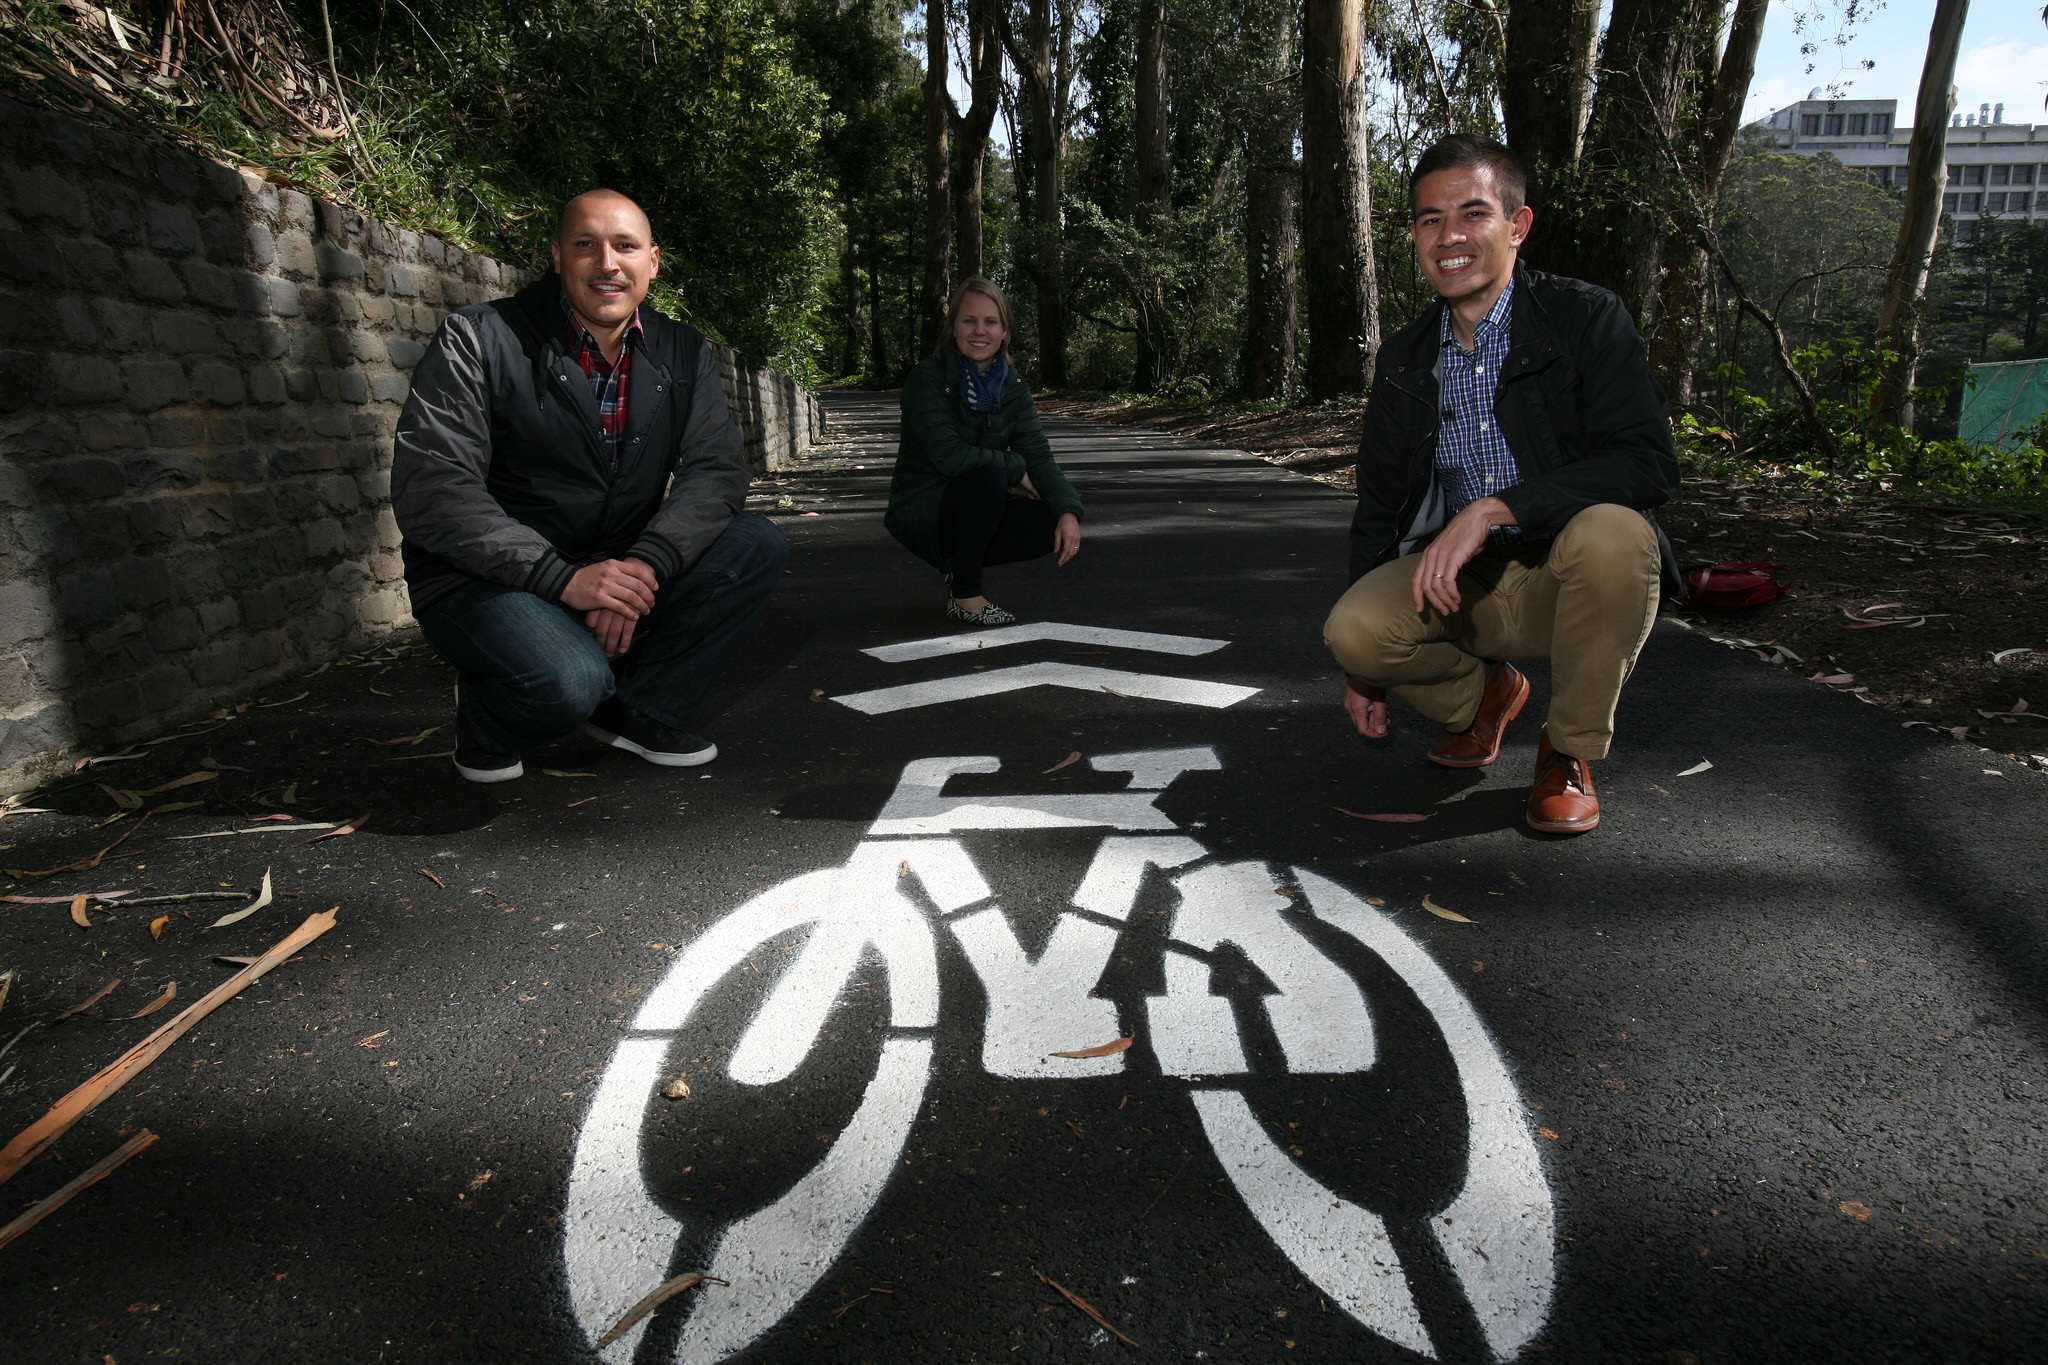 (From right) Nick Kordesch, Caitlin Steele, both are the Sustainability Coordinators at SF State, and Miguel Guerrero, the student coordinator, kneels down next to the newly painted bike path sign which runs along the east side of Cox stadium Monday, March 2. (Daniel Porter / Xpress)